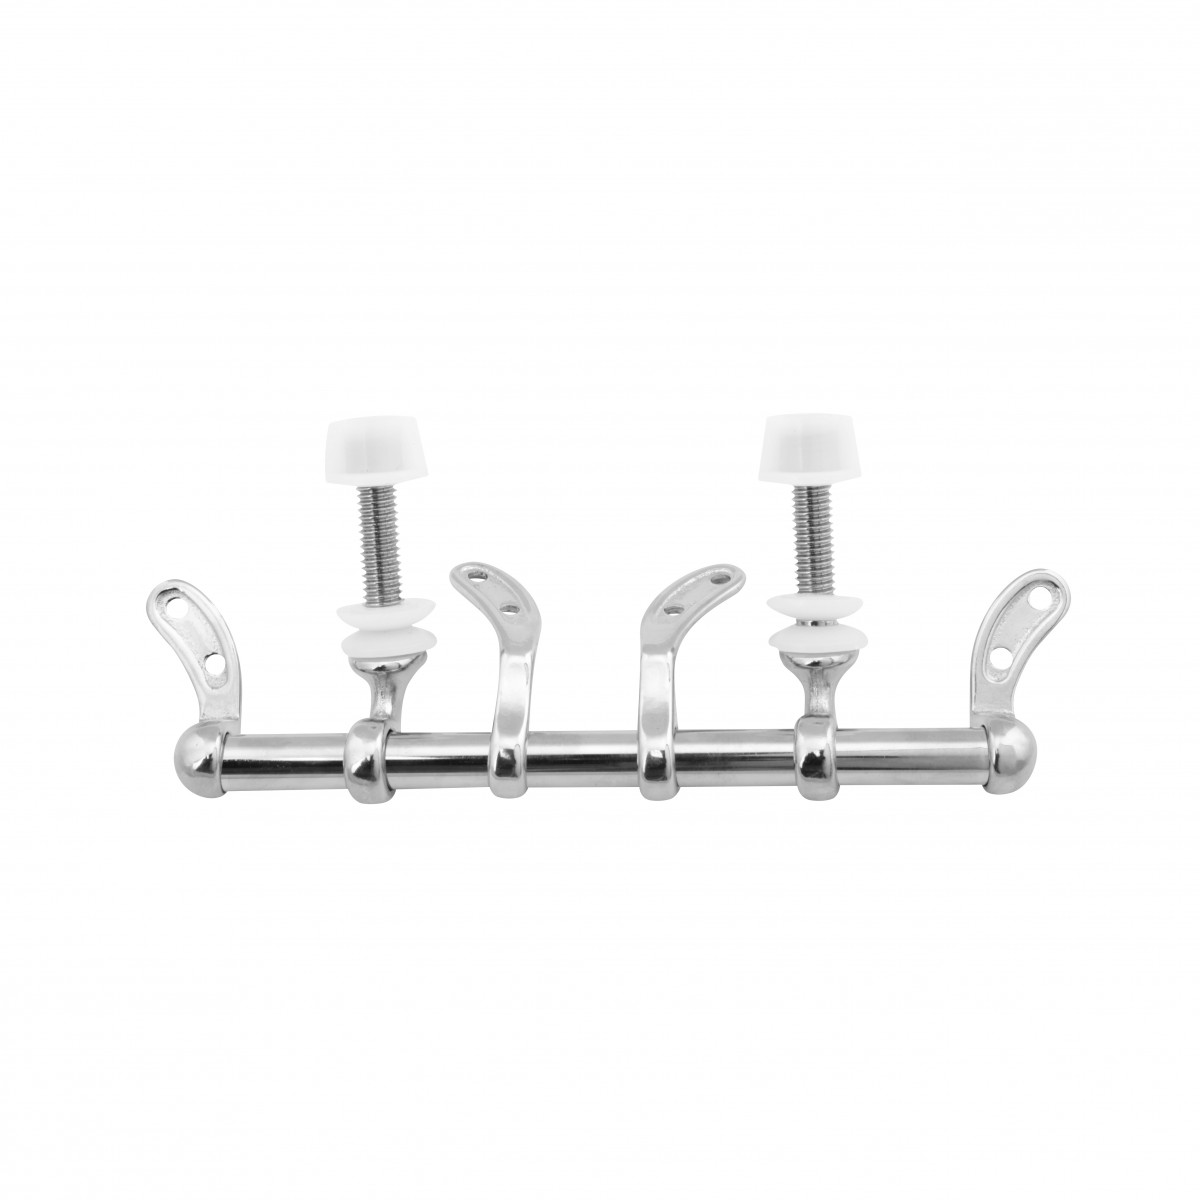 Toilet Seat Hinge Chrome on Brass Replacement Hinge Toilet Part Toilet Parts Toilet Replacement Part